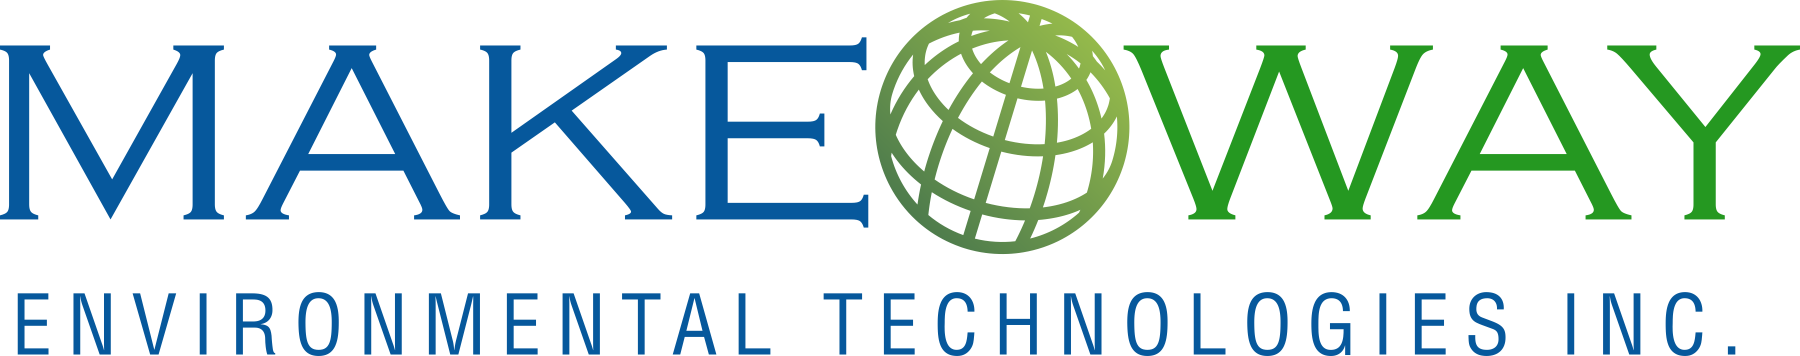 Make-Way Environmental Technologies Inc Logo